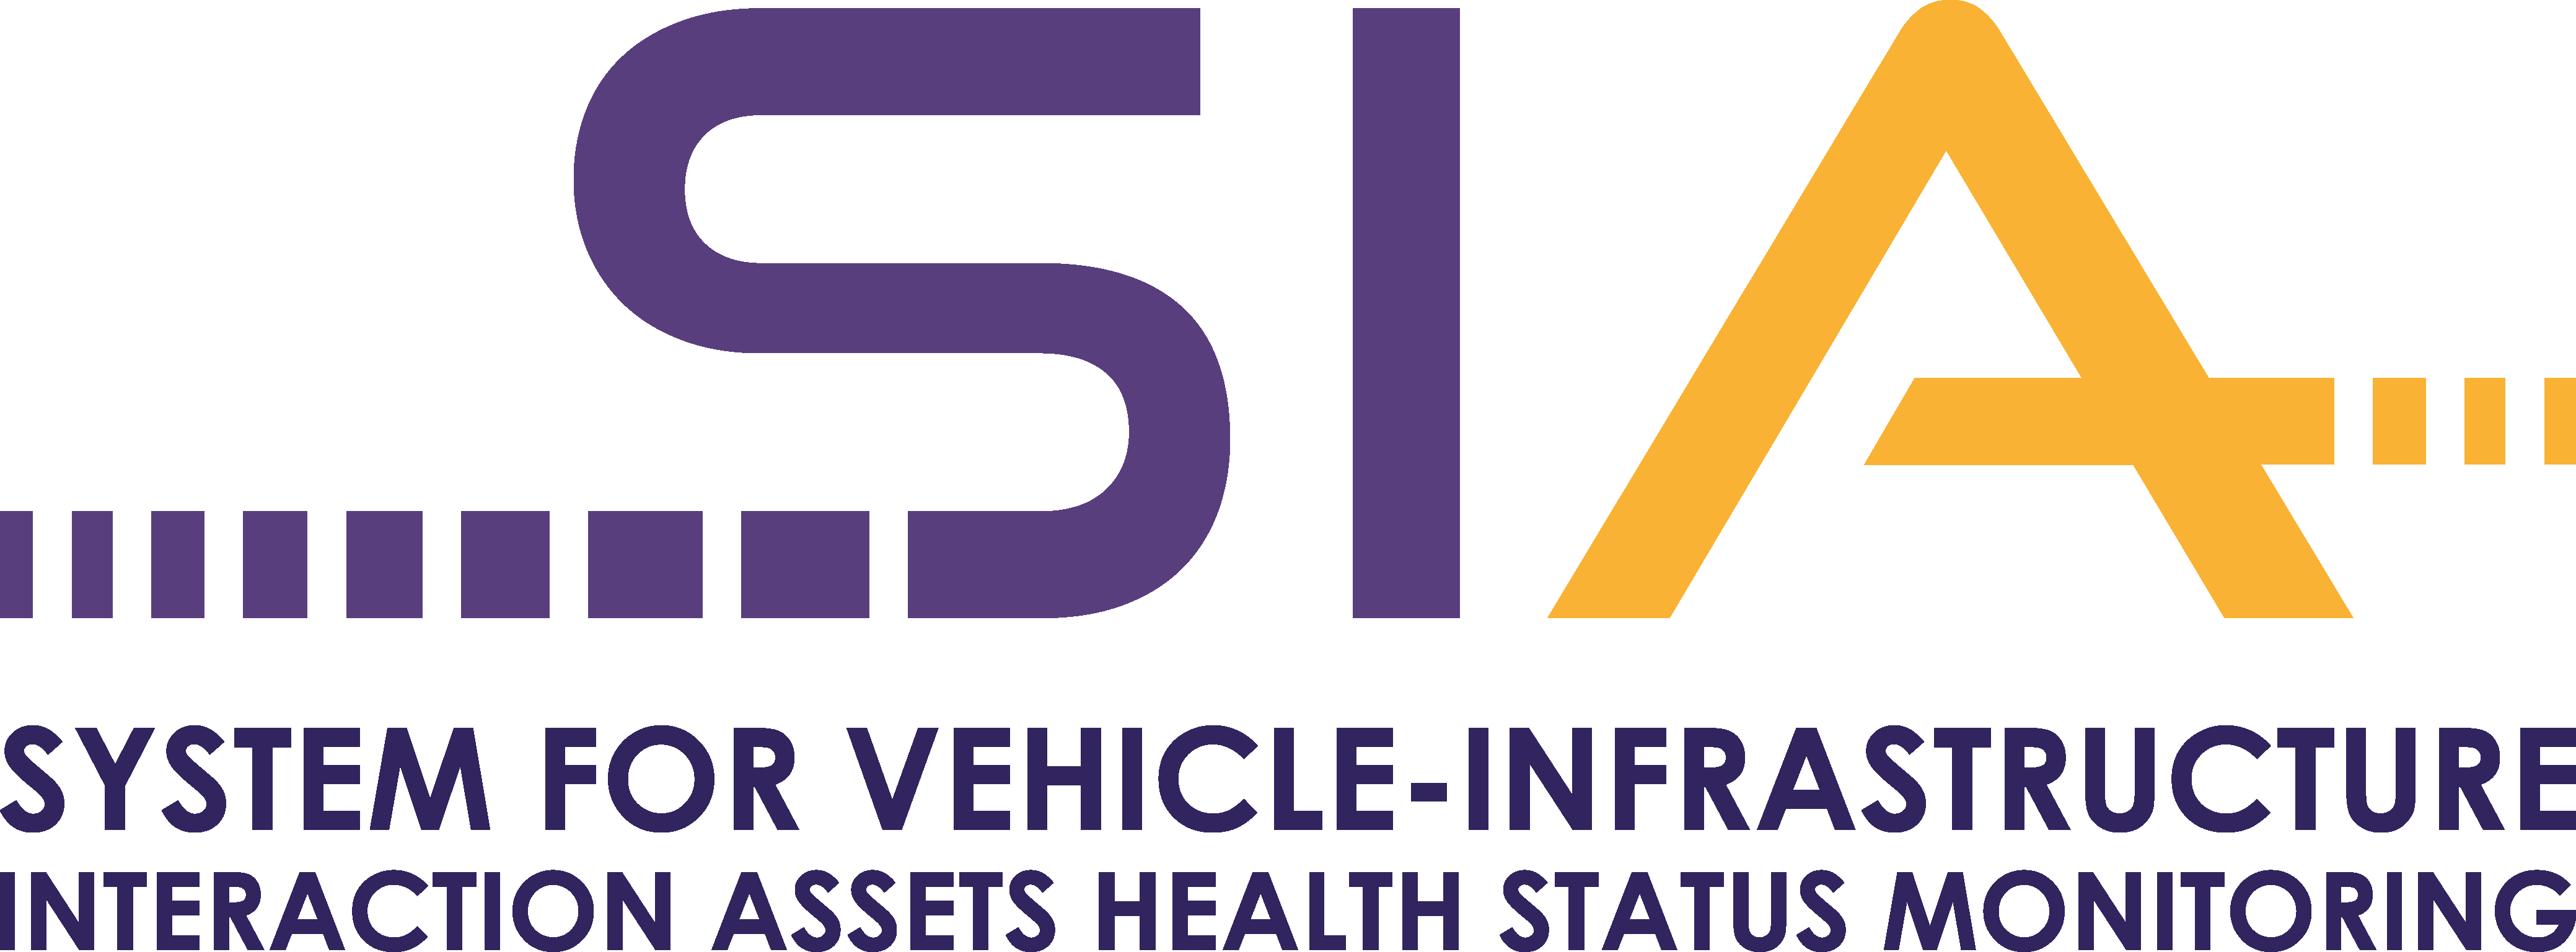 SIA project - System for vehicle-infrastructure interaction assets health status monitoring